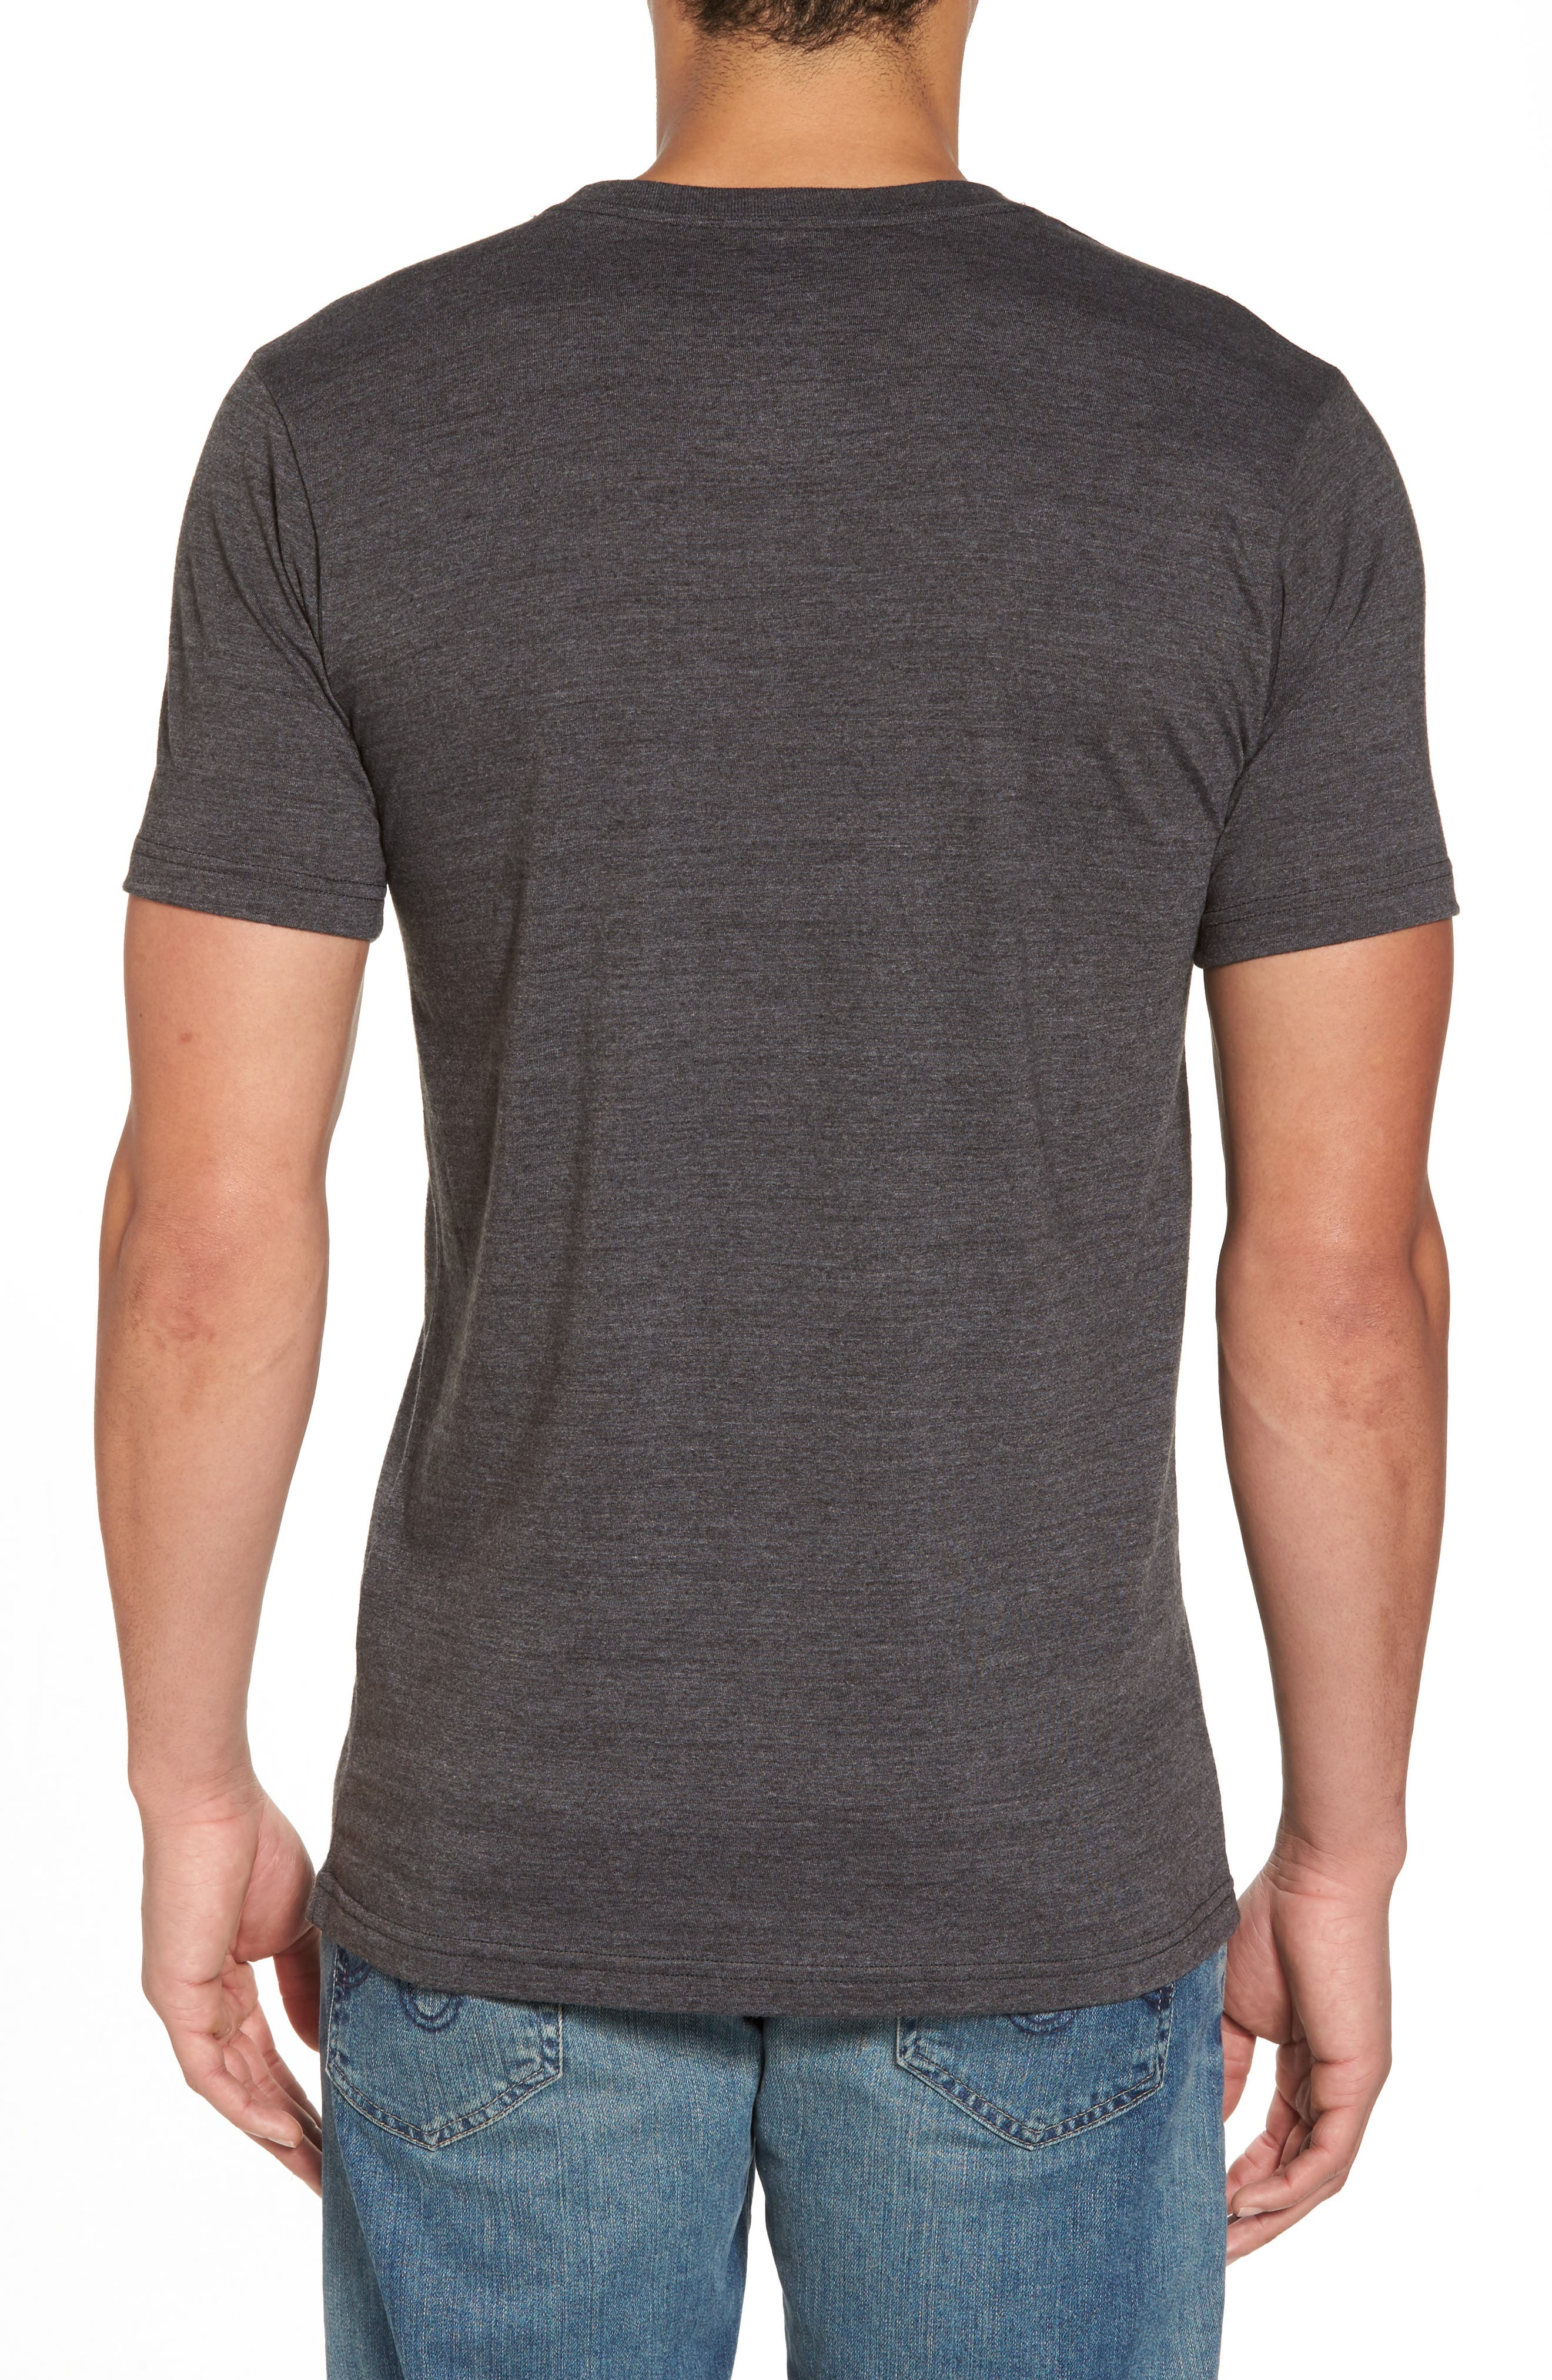 Alternate Image 2  - The North Face Half Dome T-Shirt